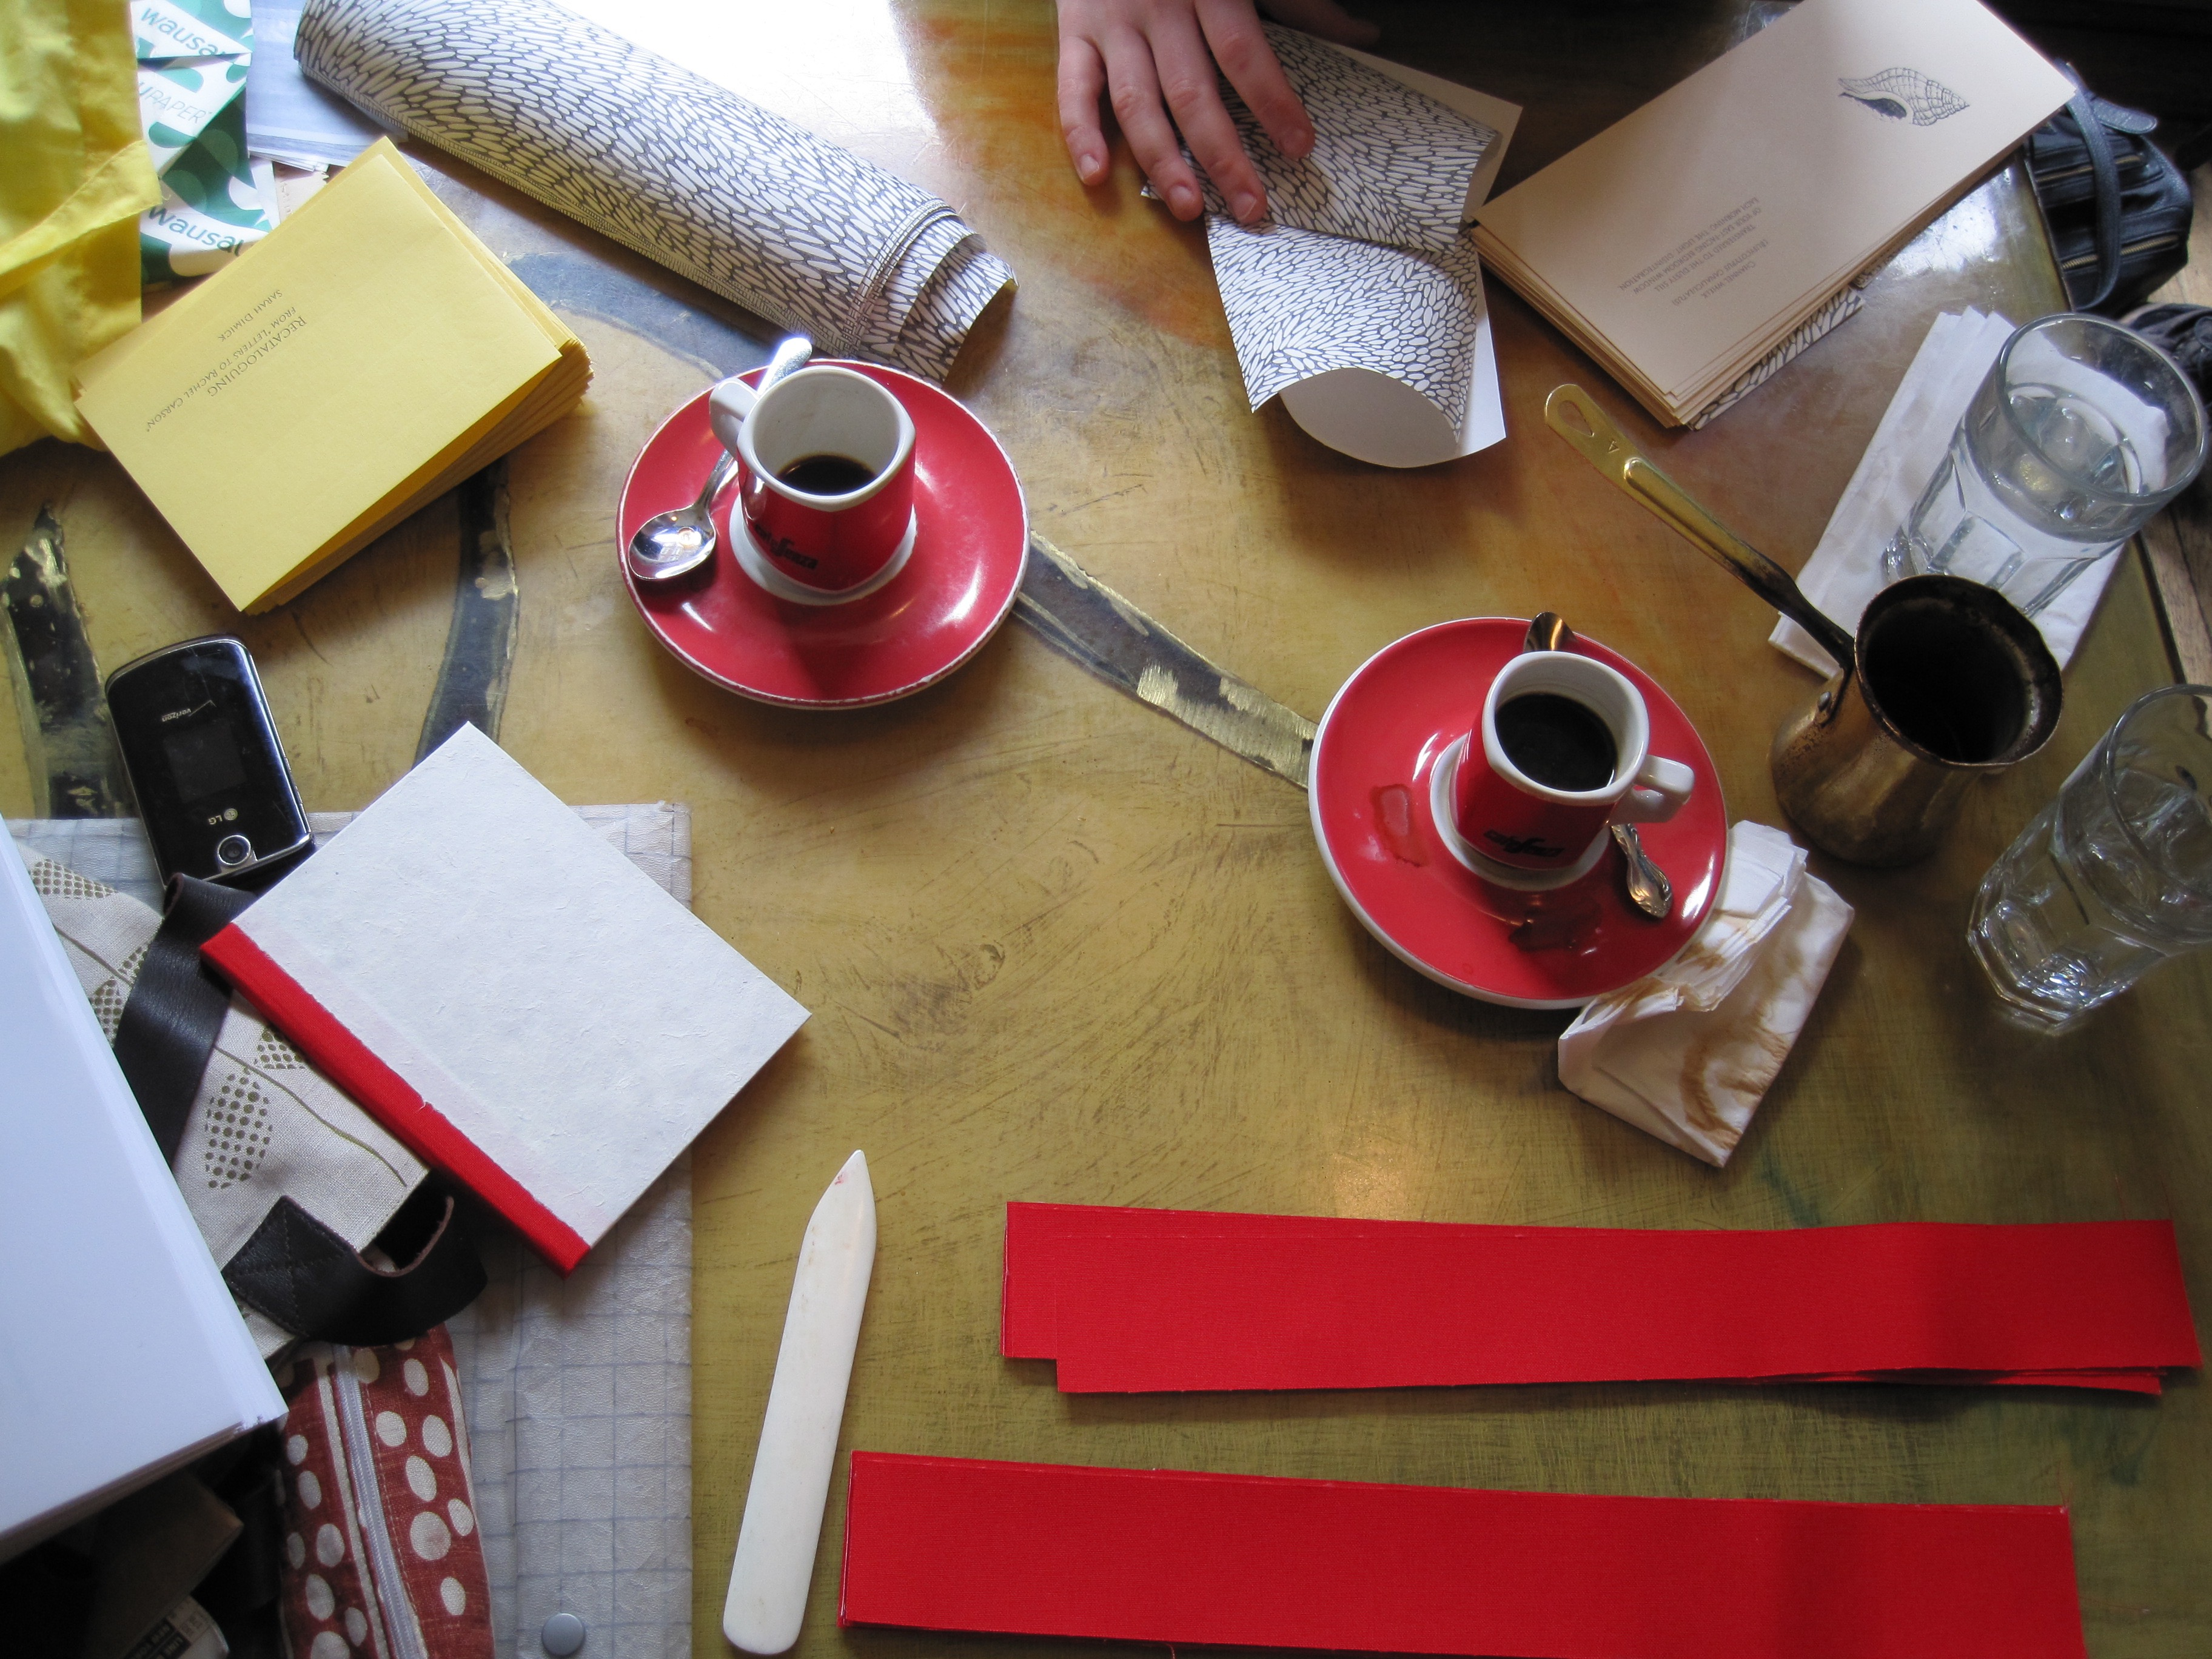 A table filled with bookmaking supplies and coffee cups